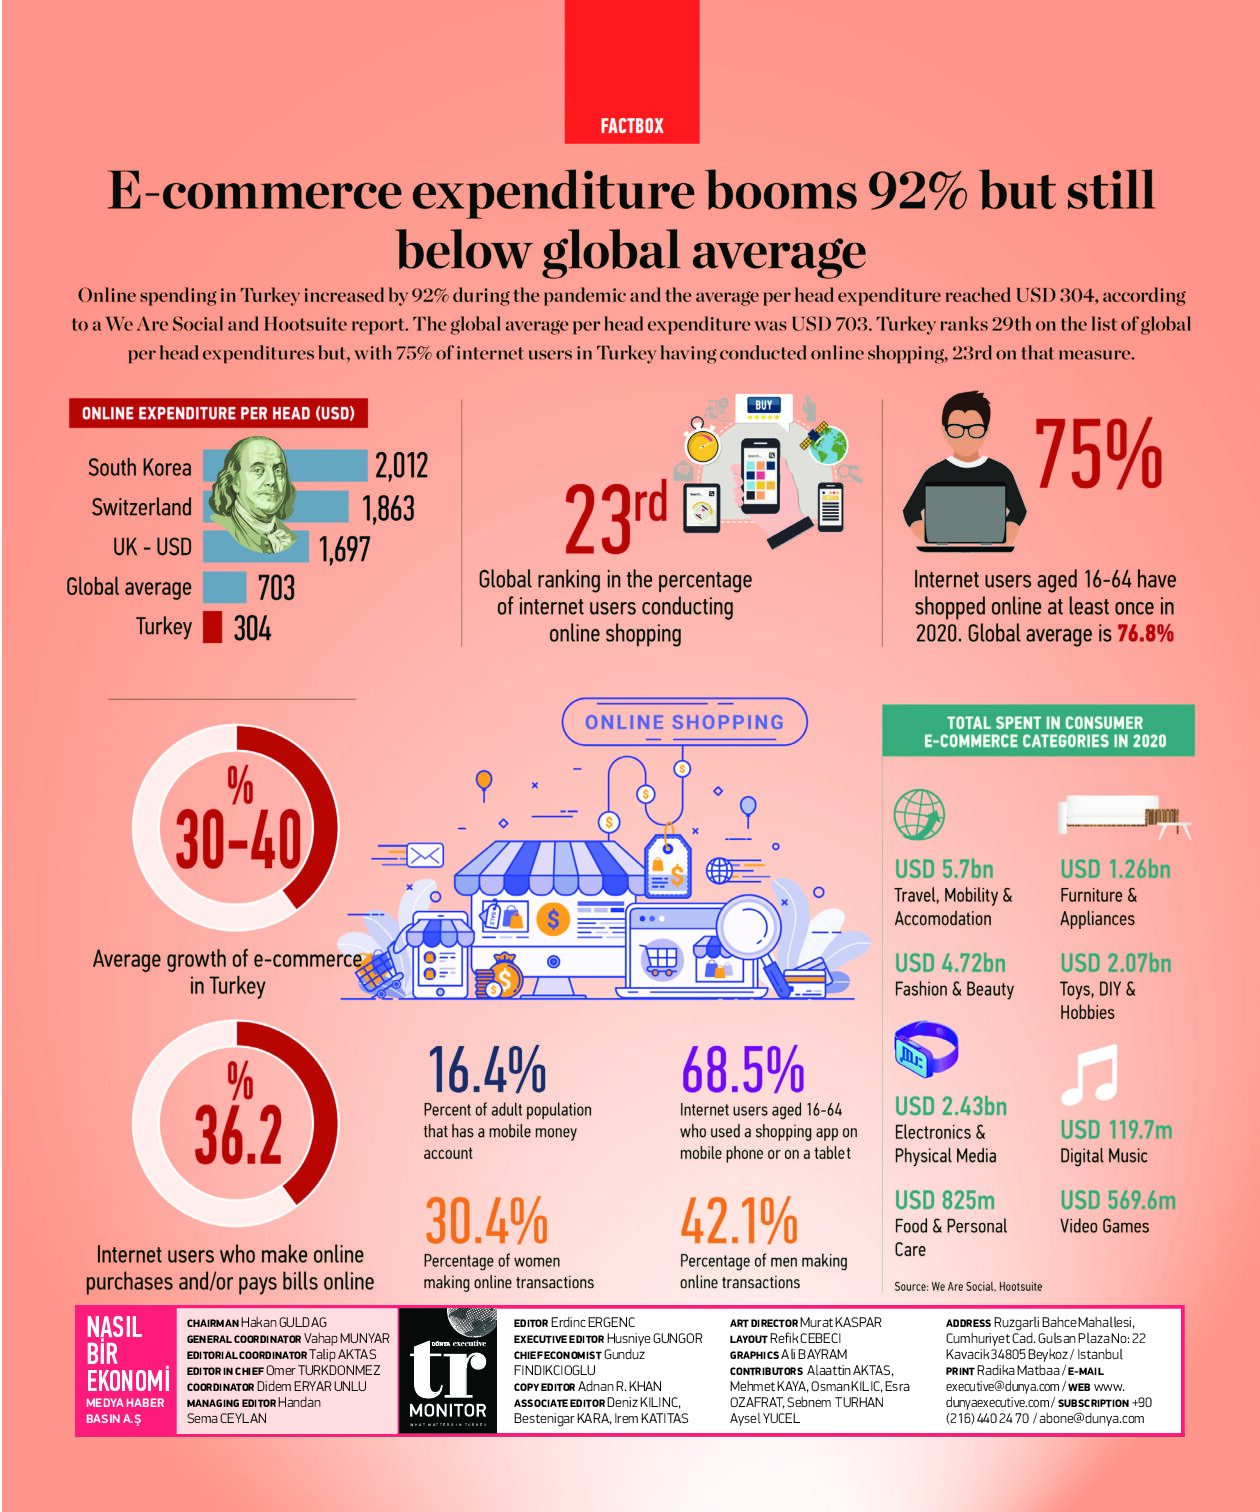 E commerce expenditure booms 92% but still below global average